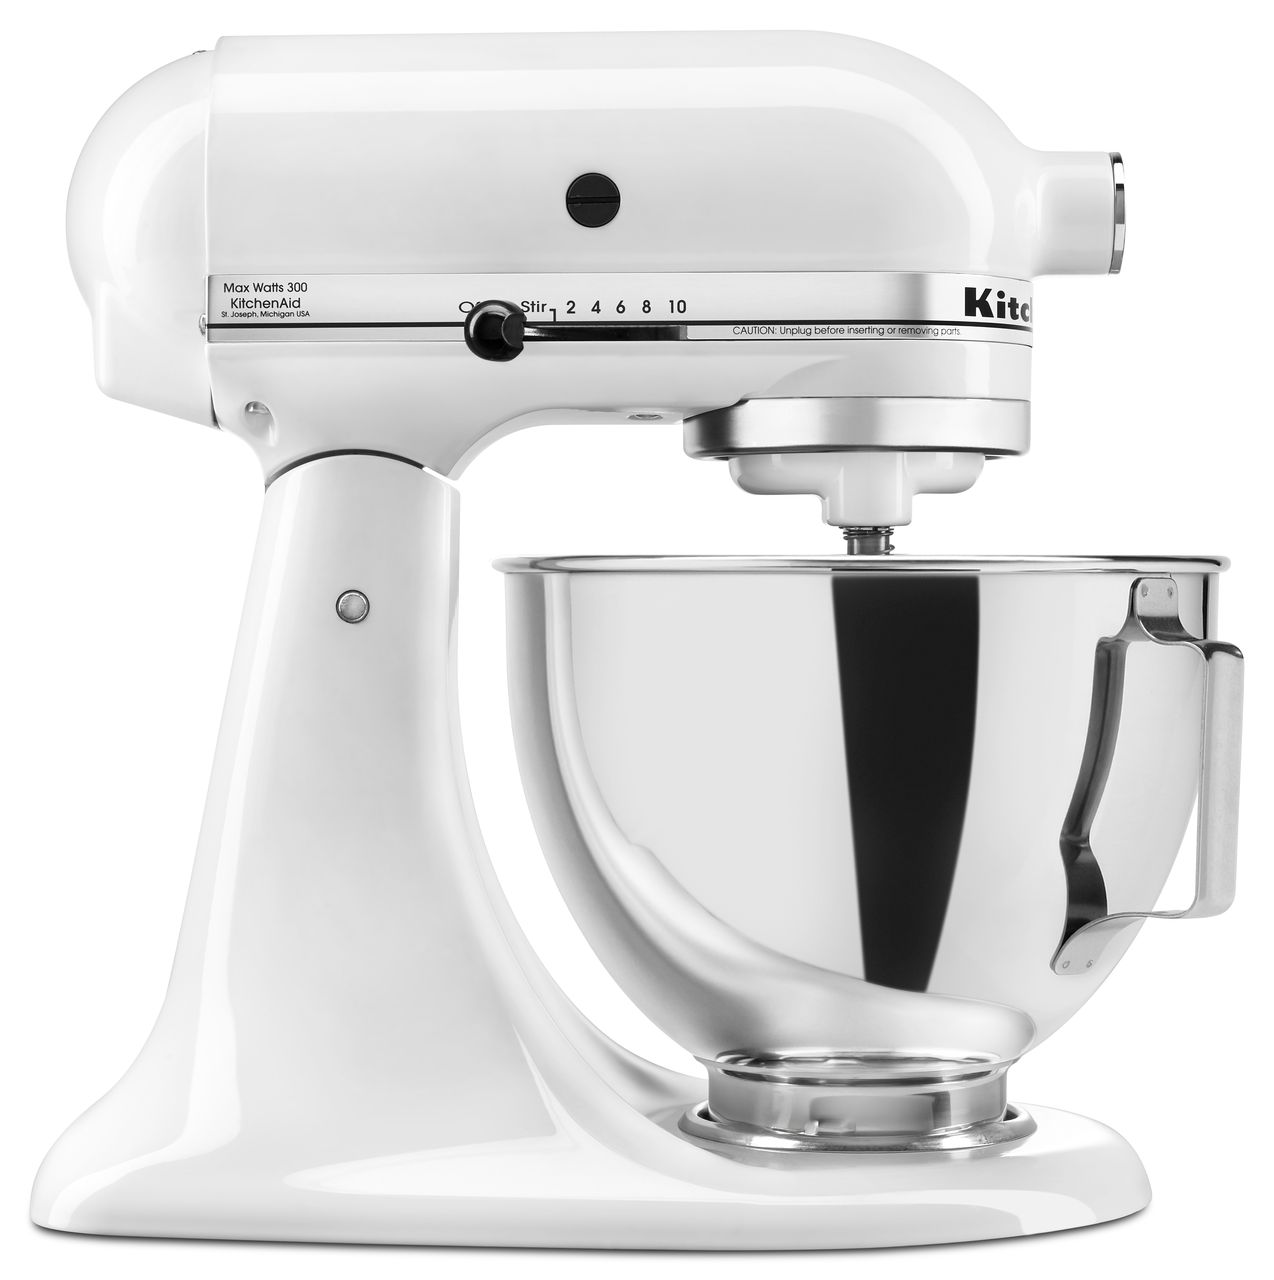 KitchenAid-4-5-quart-Tilt-Head-Stand-Mixer-with-Flex-Edge-Beater-KSM85PSQ thumbnail 31